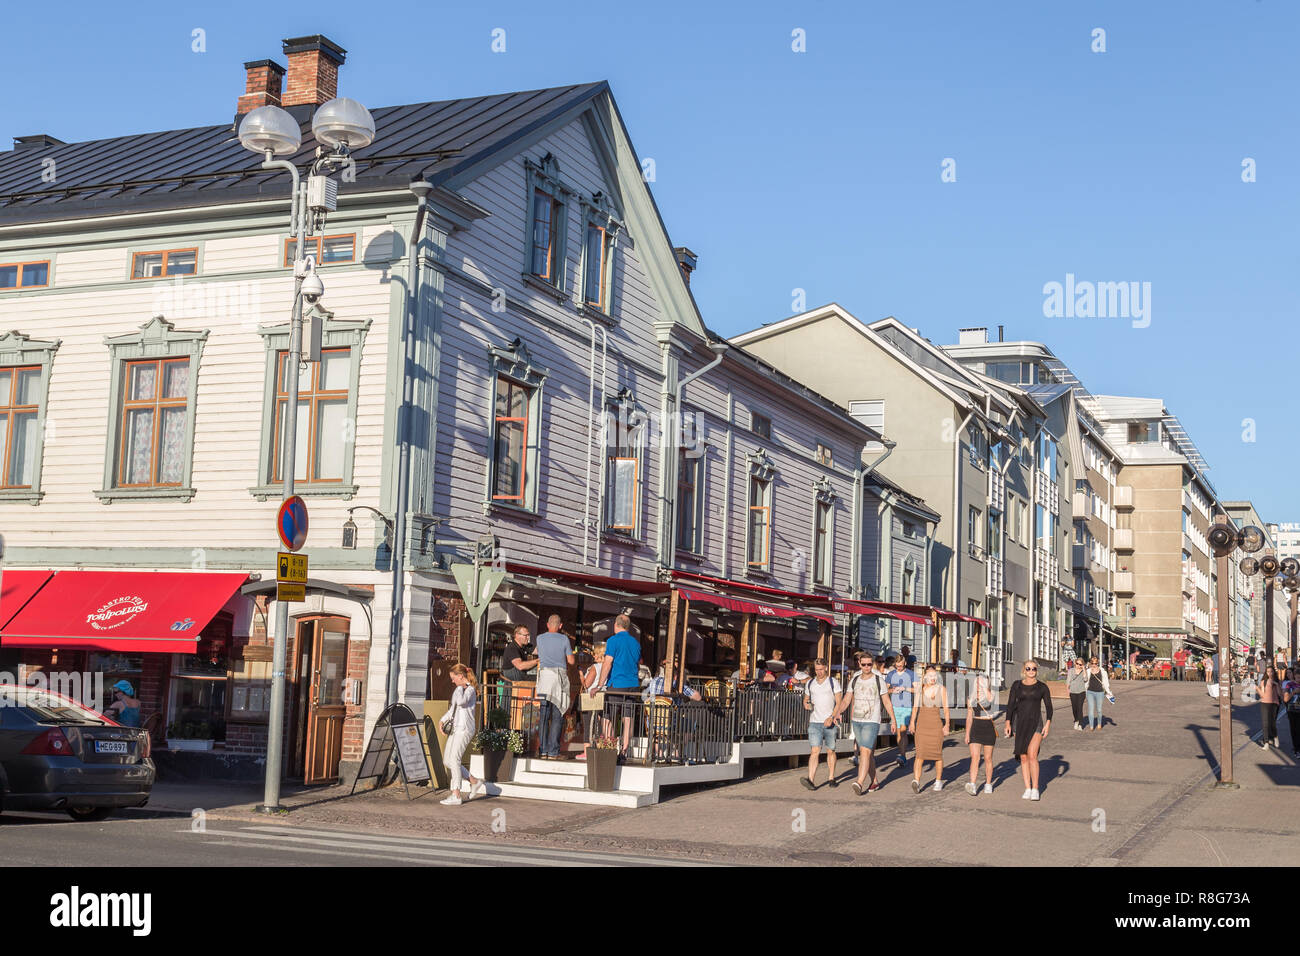 OULU, FINLAND - JULY 21, 2016: People in the centre of Oulu Finland enjoying an exceptional sunny and hot evening. - Stock Image